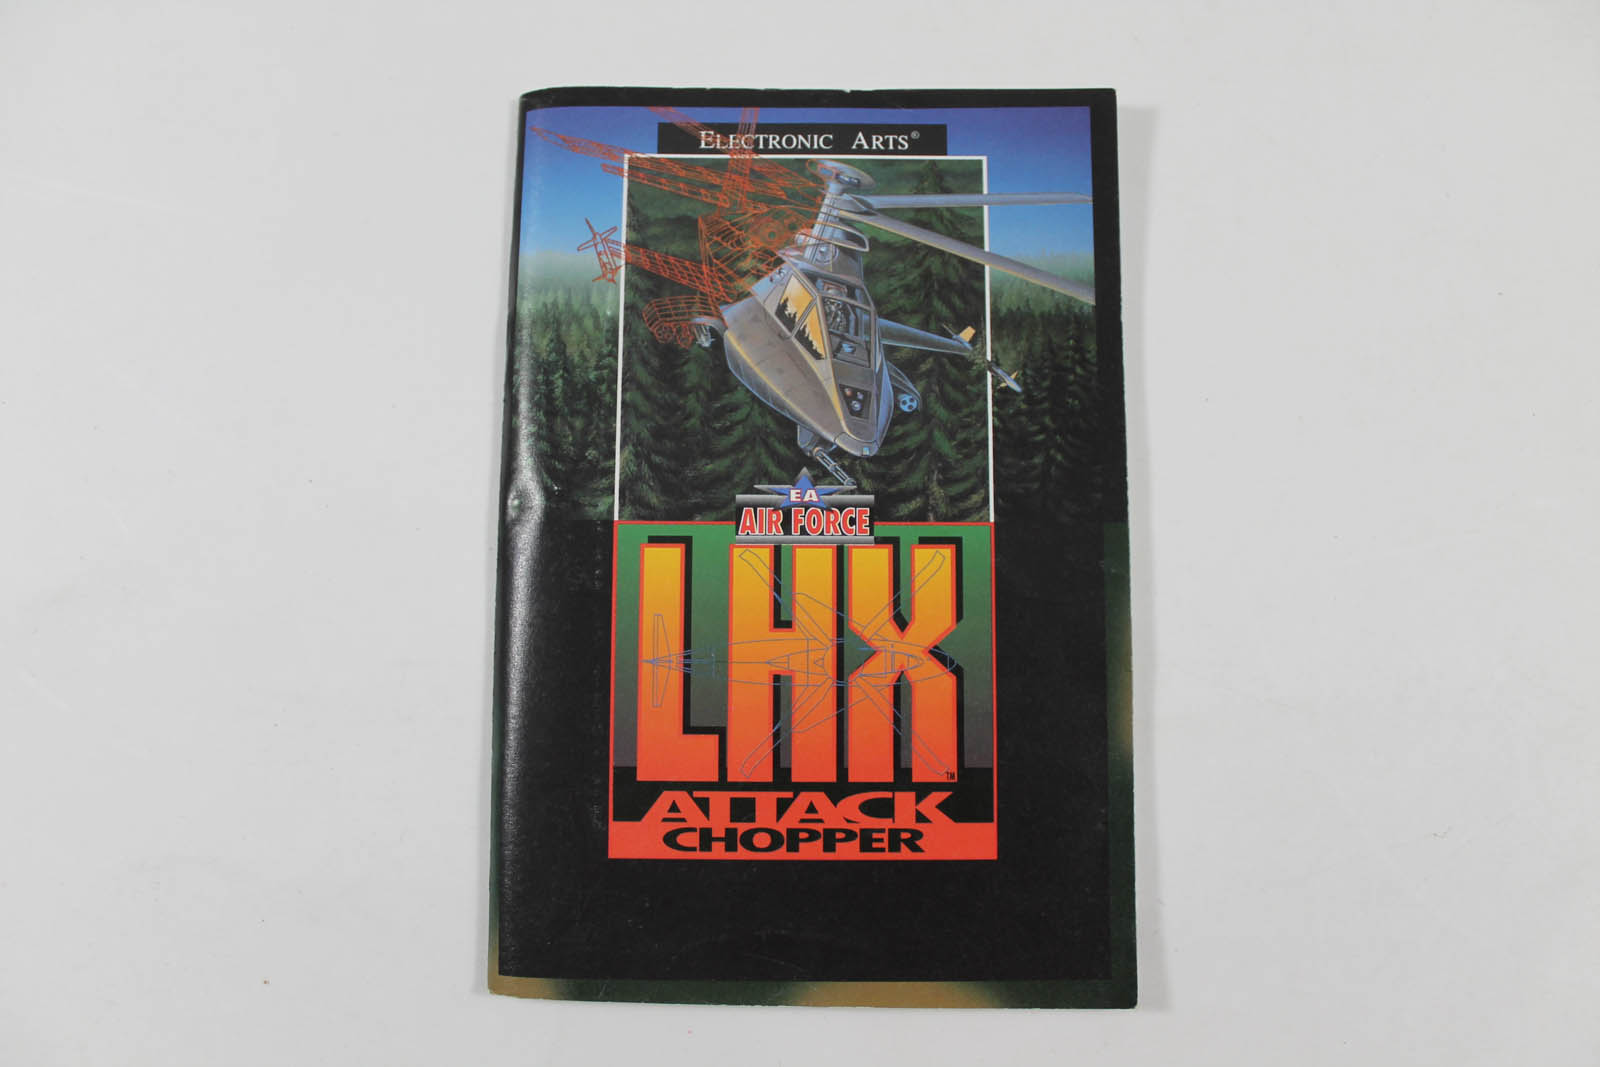 lhx attack chopper pc manual